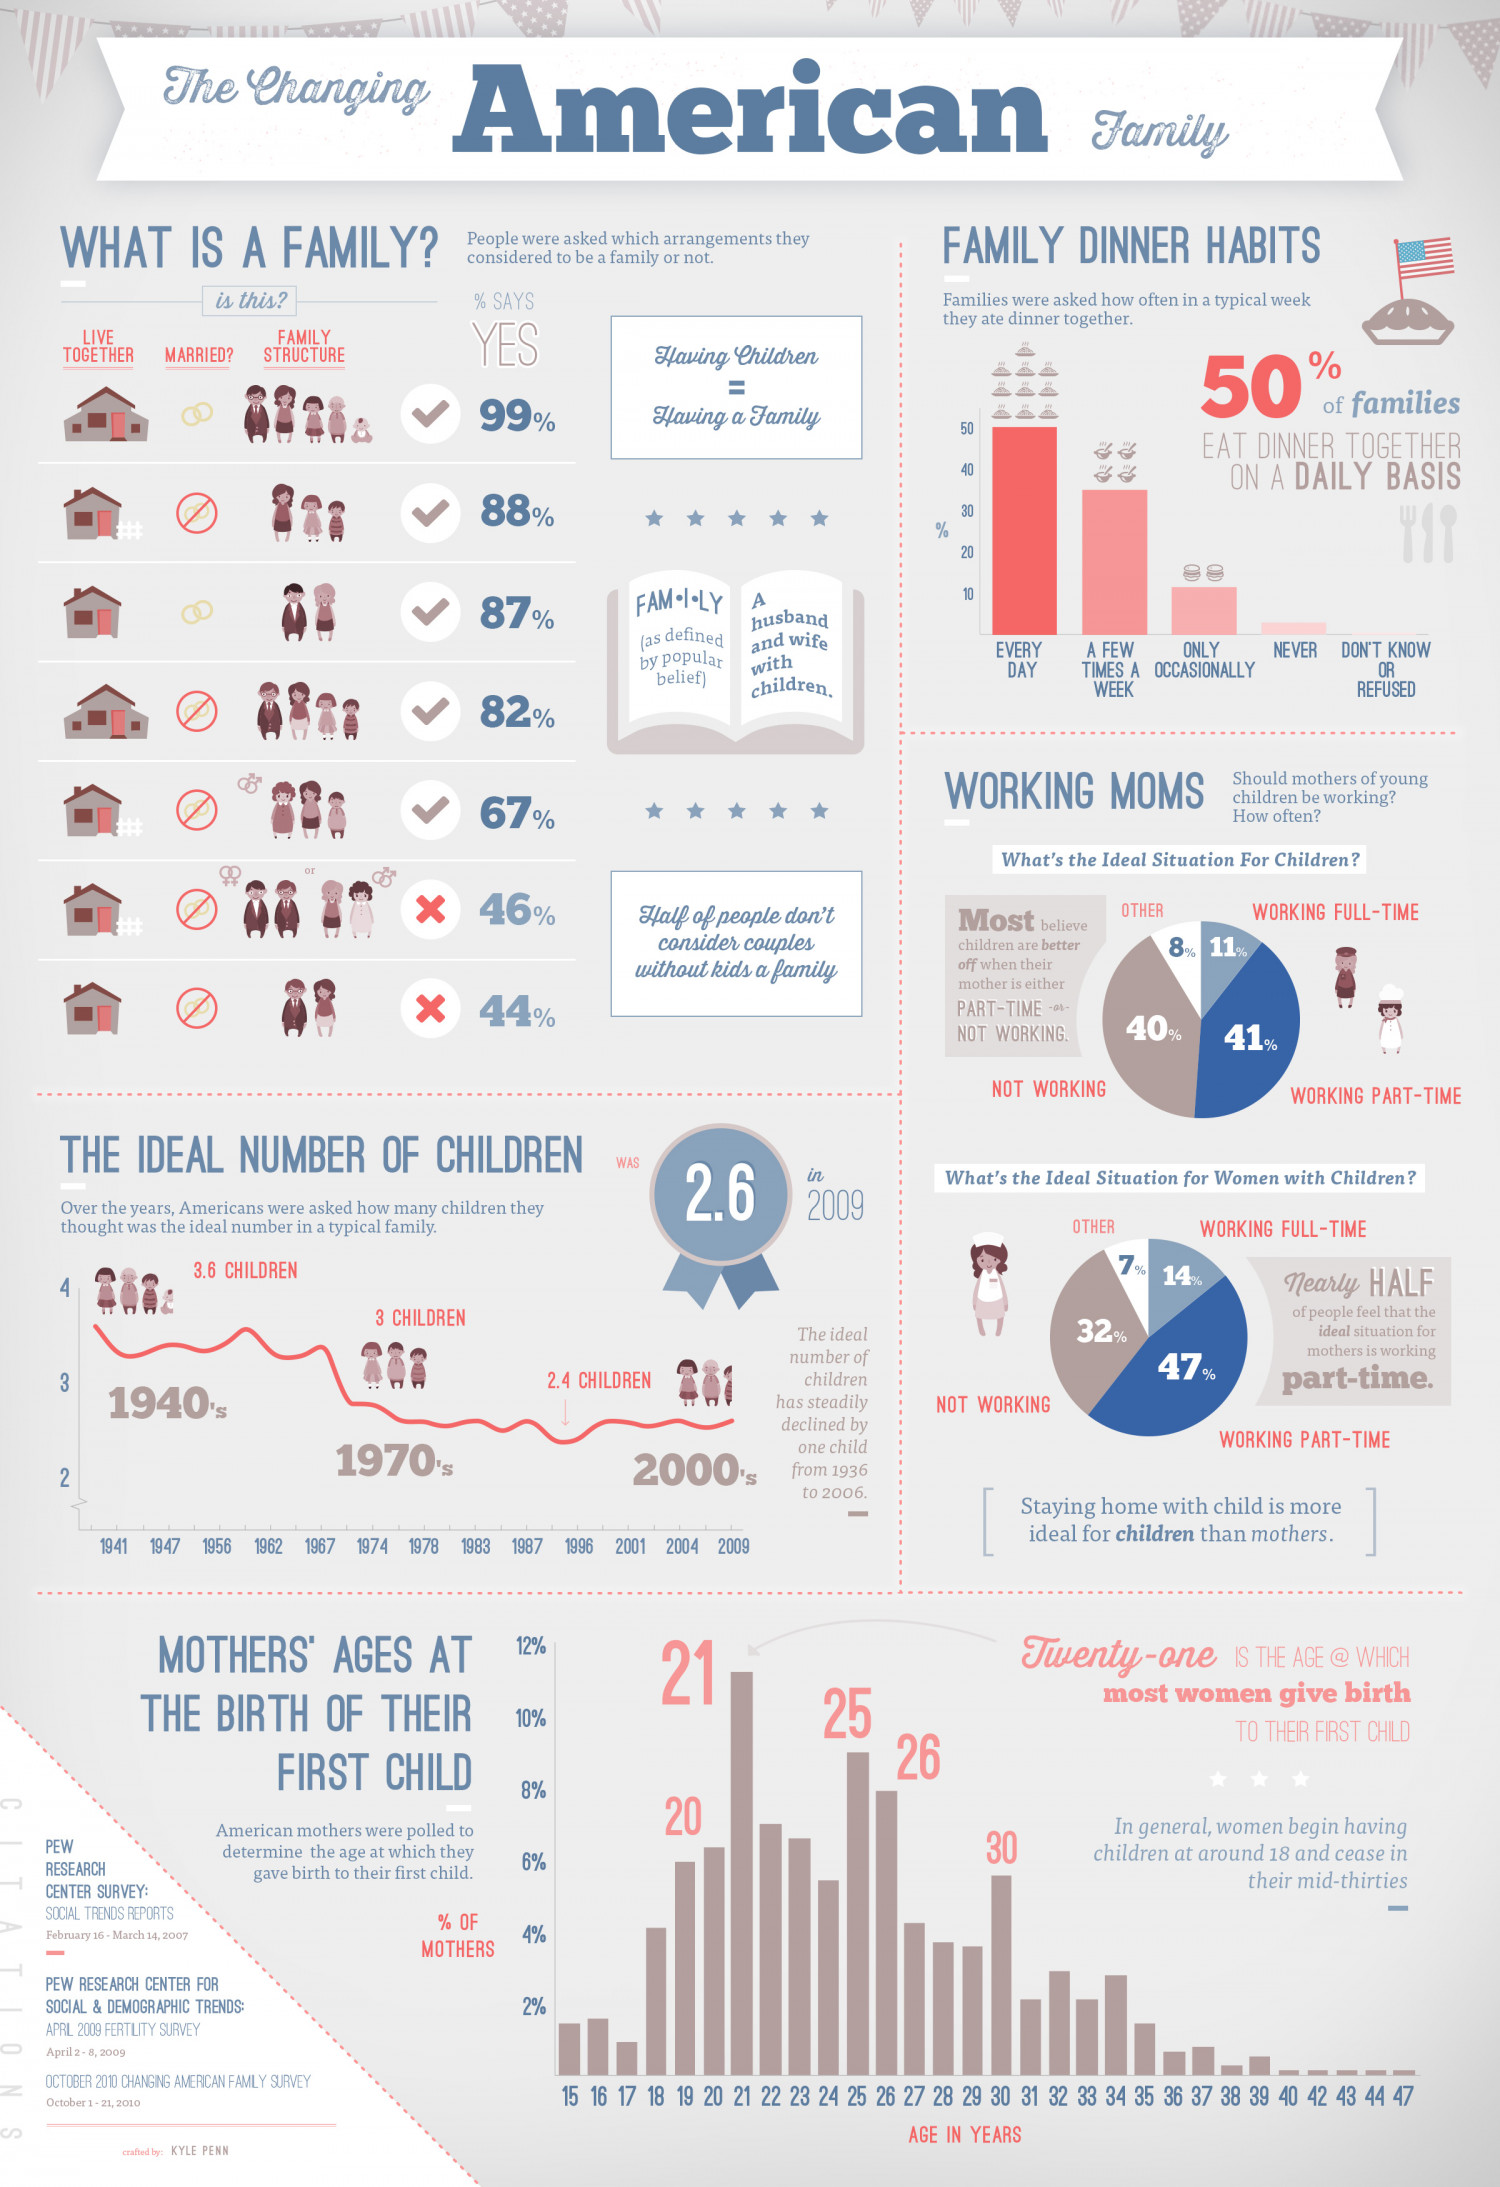 The Changing American Family Infographic